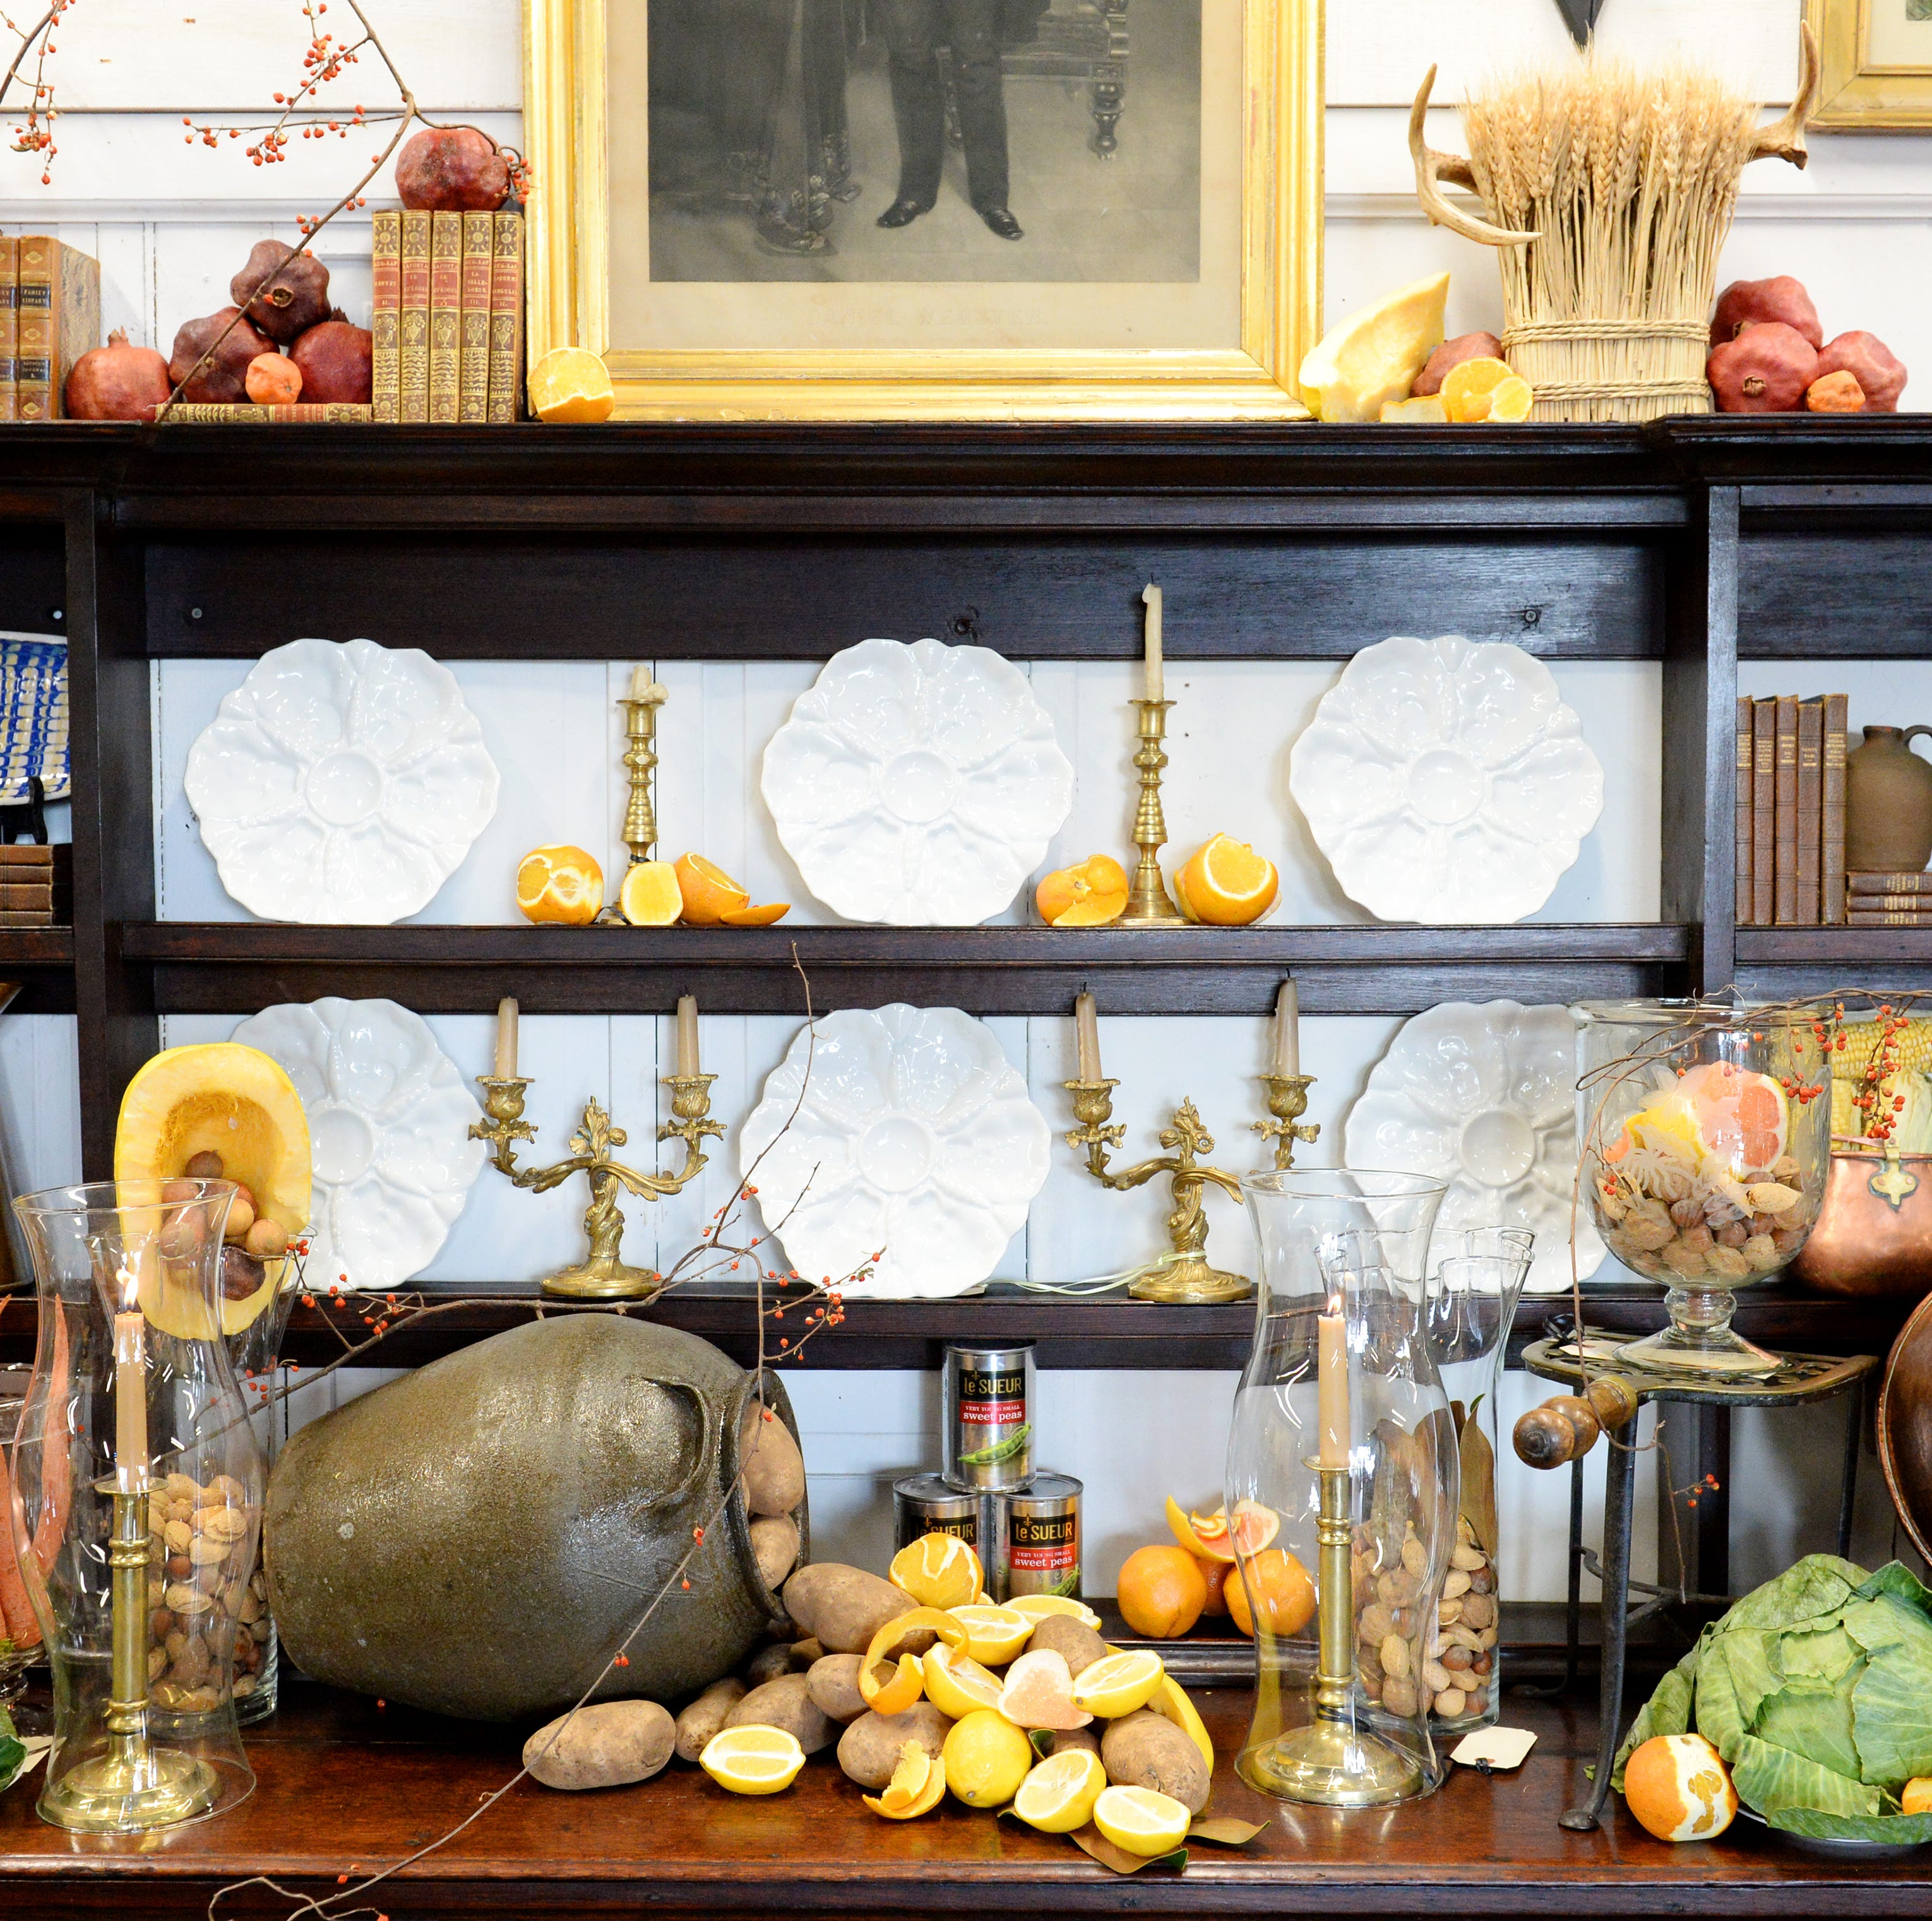 Finding antiques for your home can be a treasure hunt